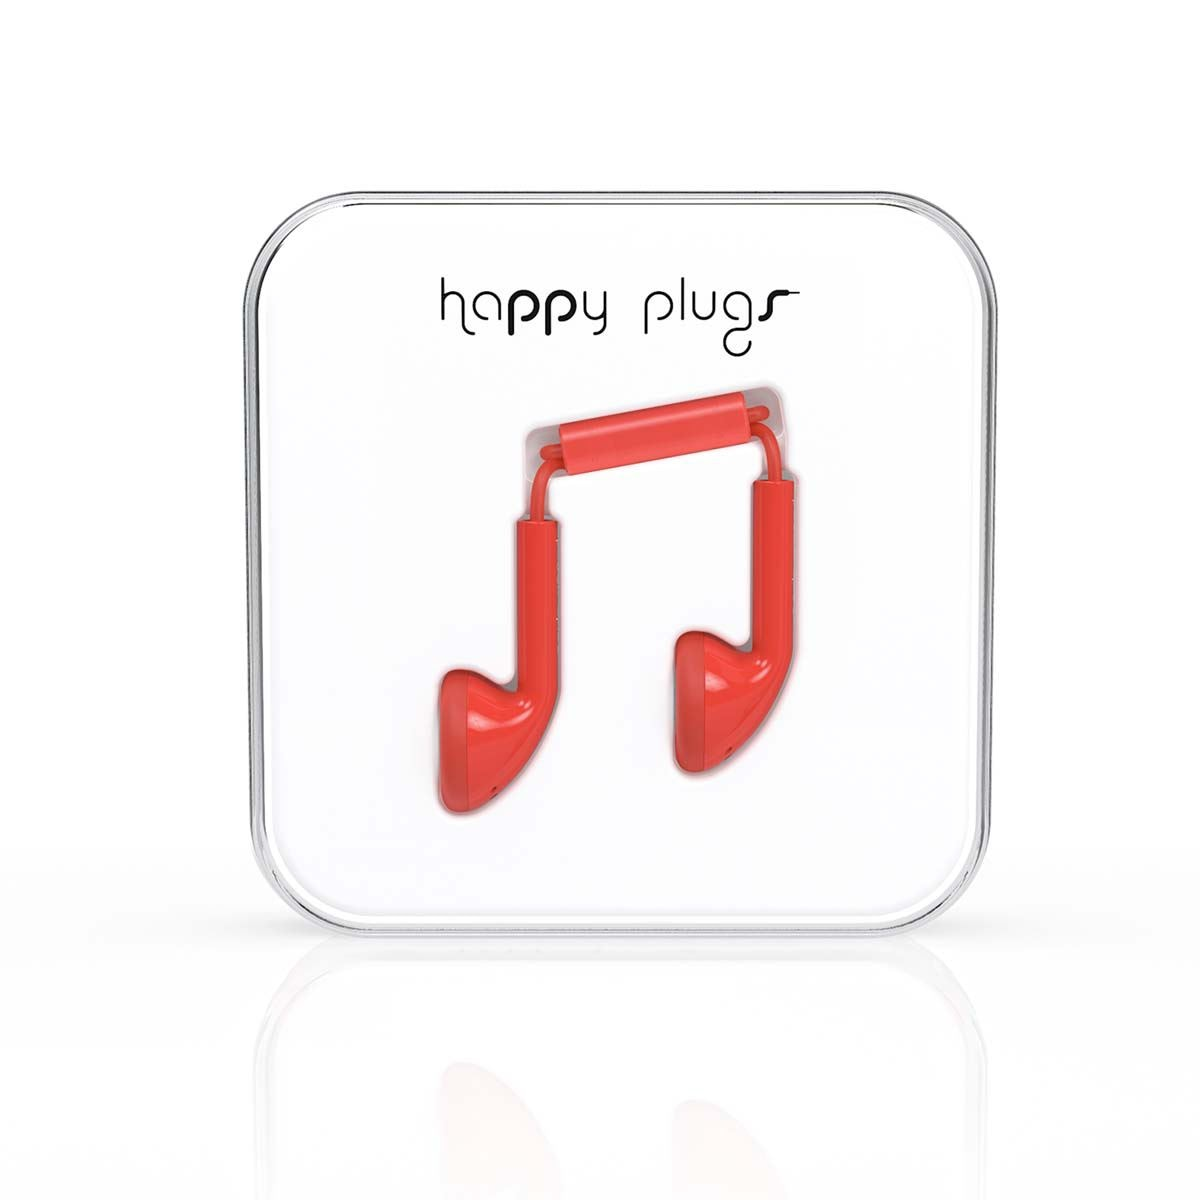 Audífonos happy plugs 7701 rojo  - Sanborns